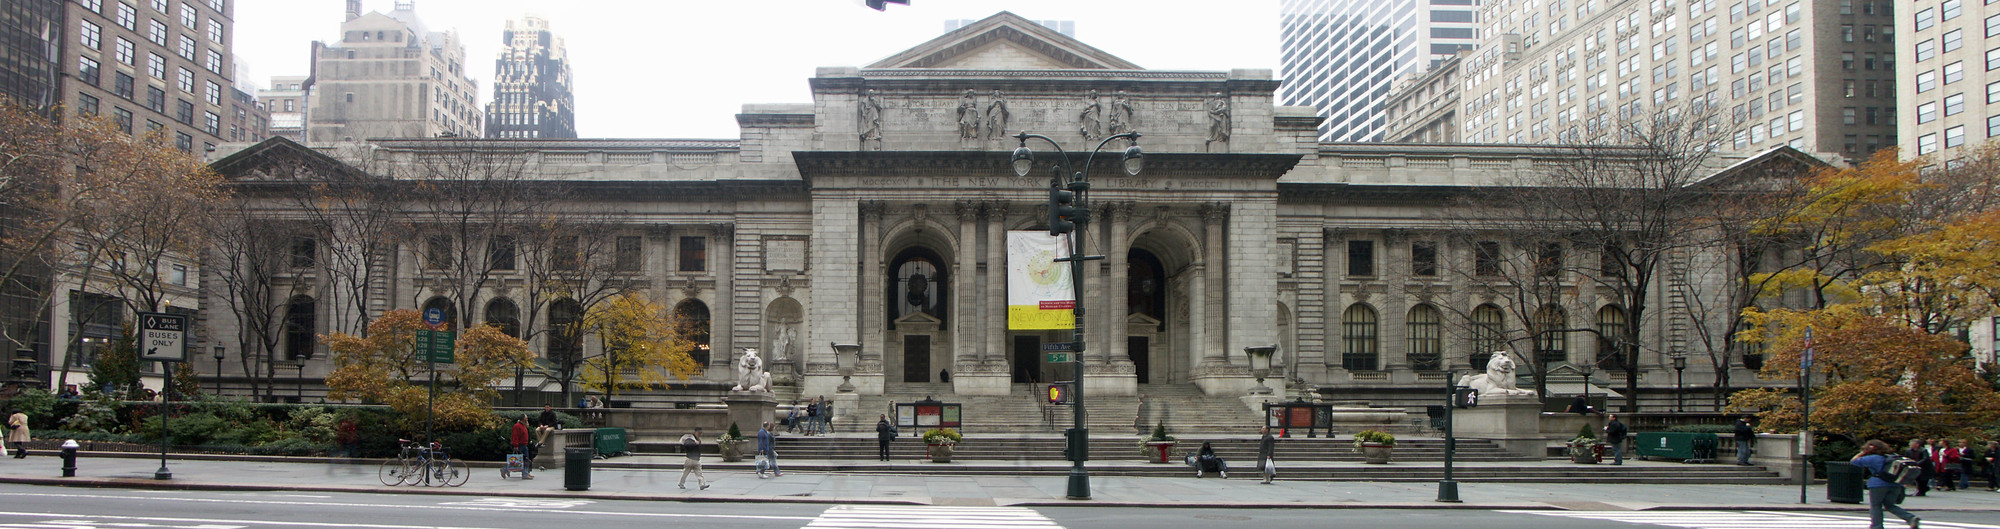 The new york public library john merven carrère and thomas hastings image courtesy of